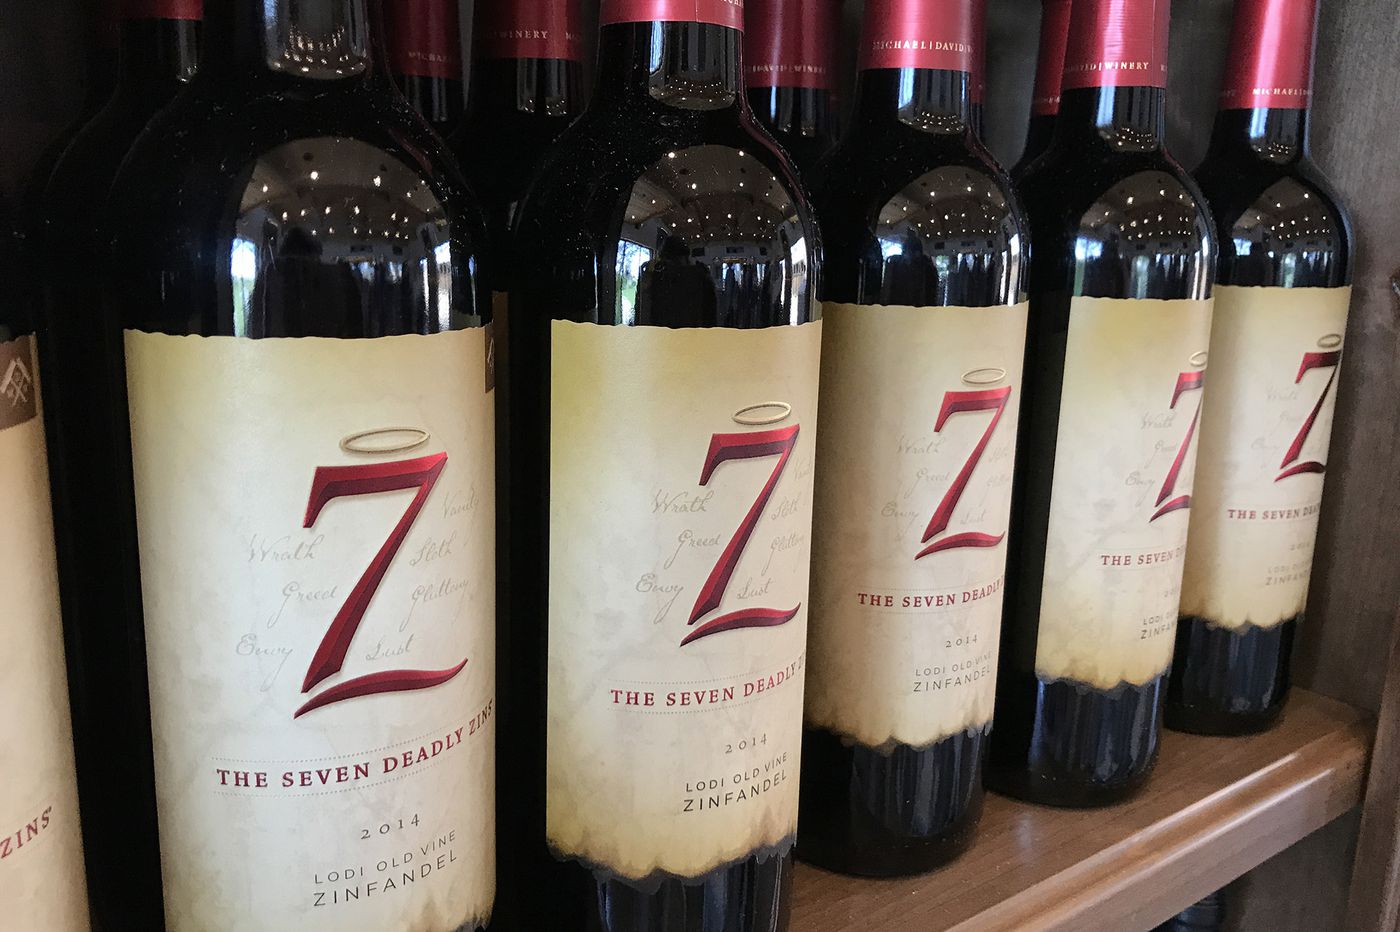 Here's why zinfandel is cheaper than pinot noir and cabernet sauvignon